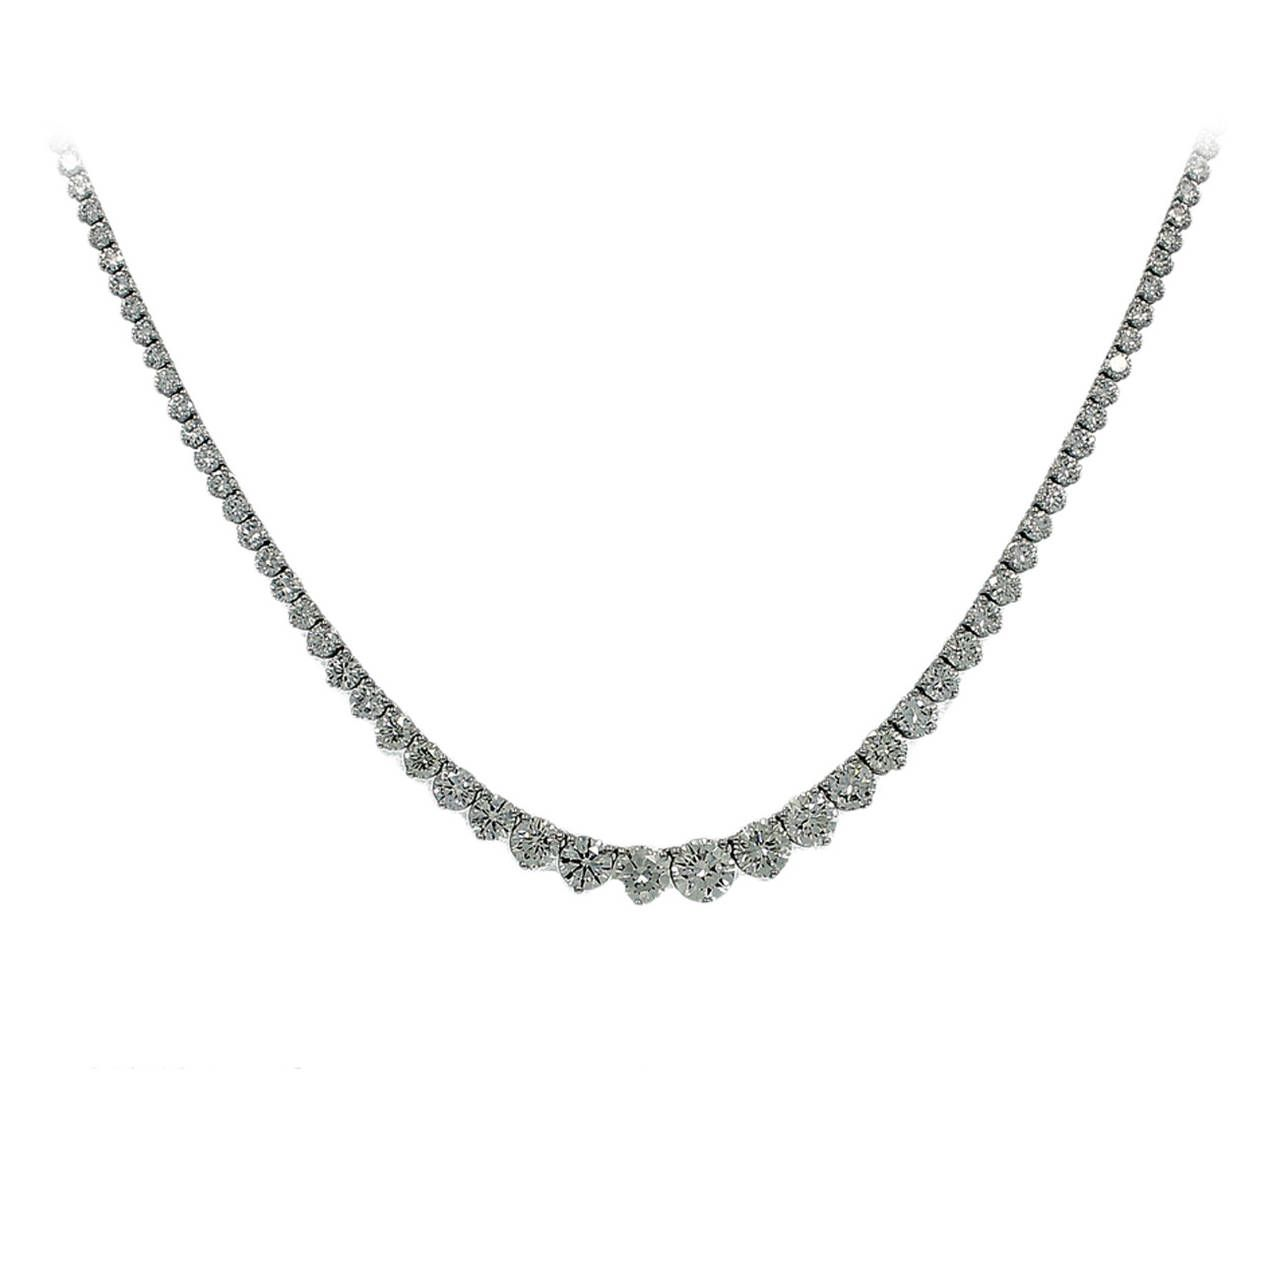 Platinum Riviera Diamond Necklace | From a unique collection of vintage choker necklaces at https://www.1stdibs.com/jewelry/necklaces/choker-necklaces/